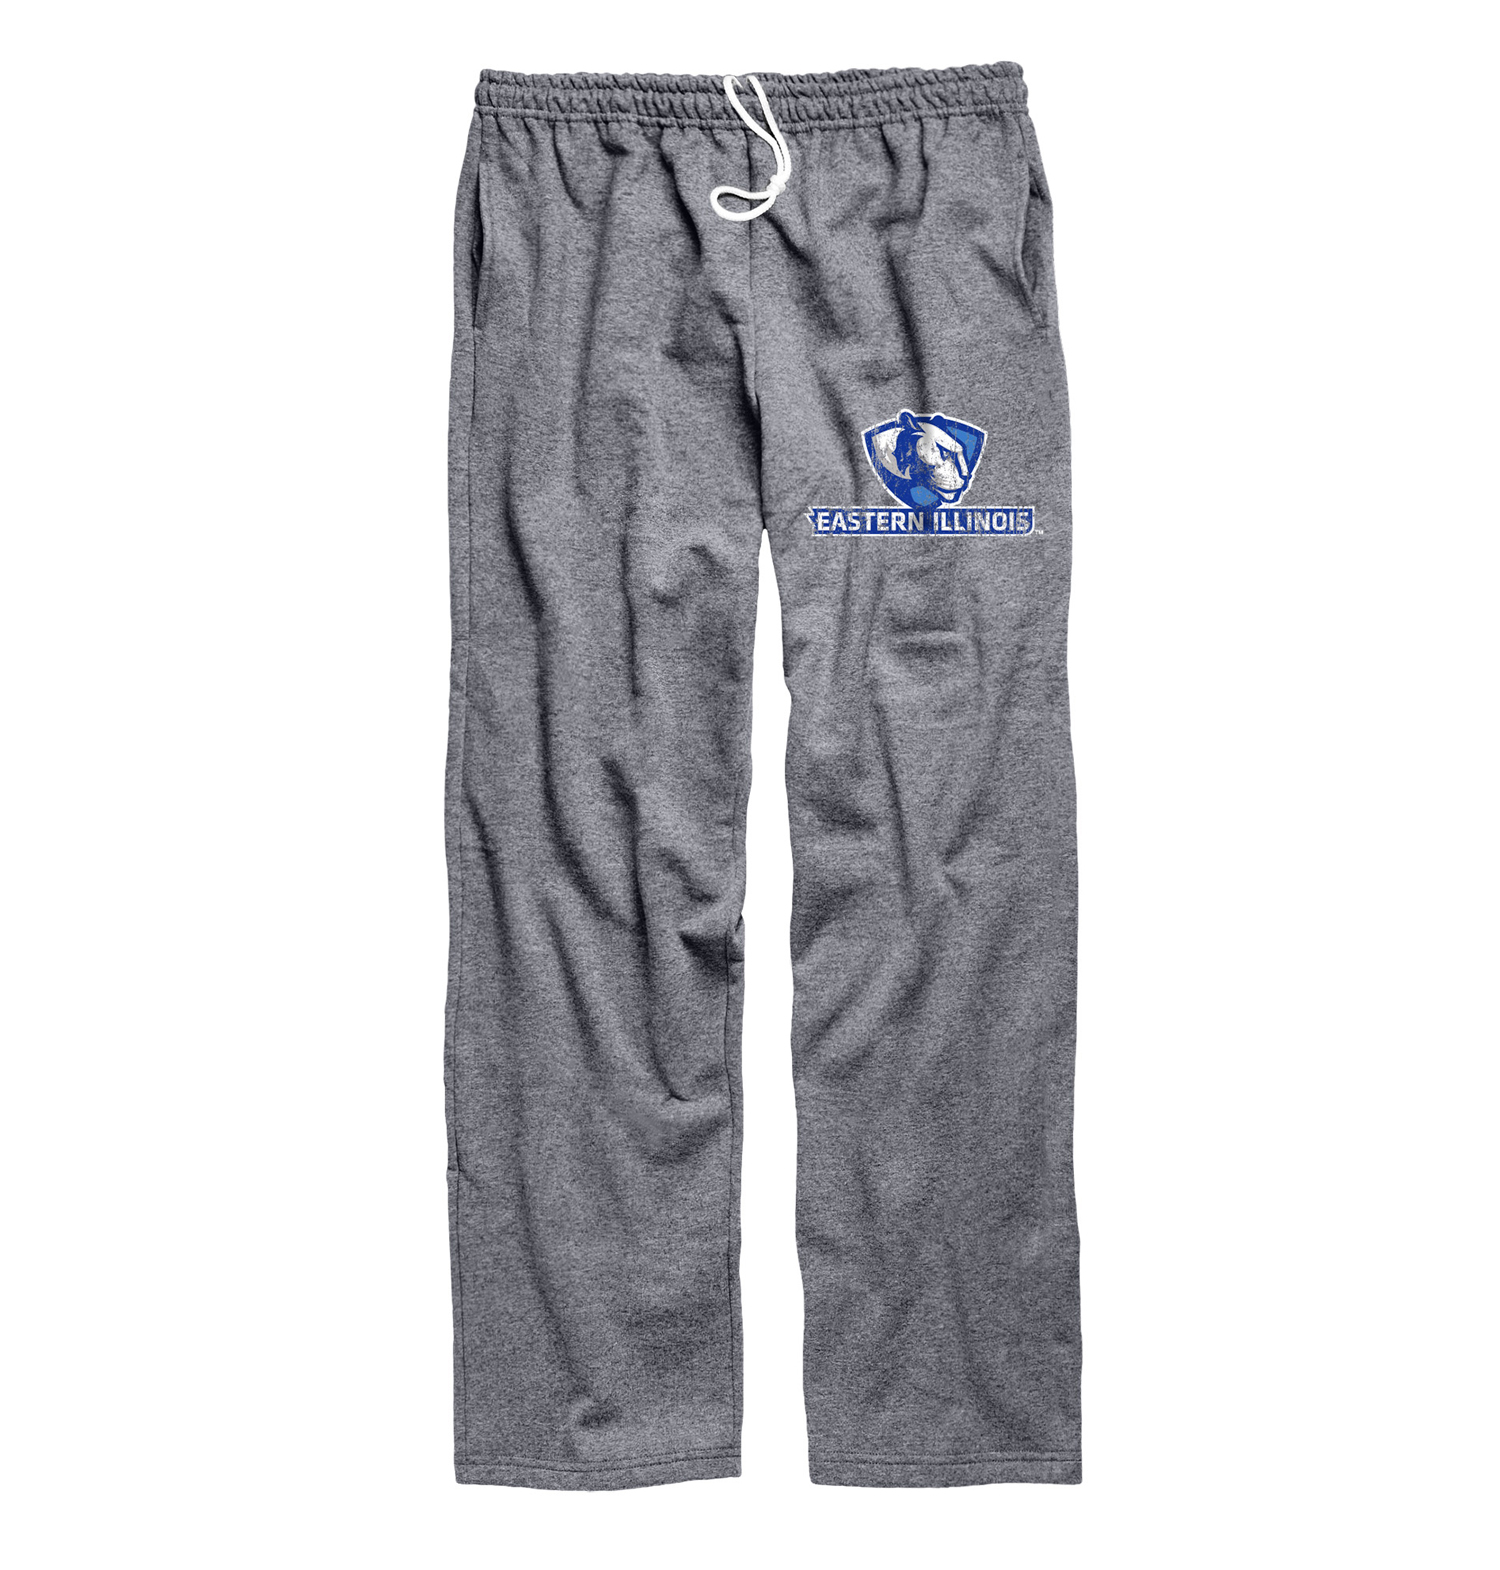 Image For PL EI Sweatpants - light grey, dark gray